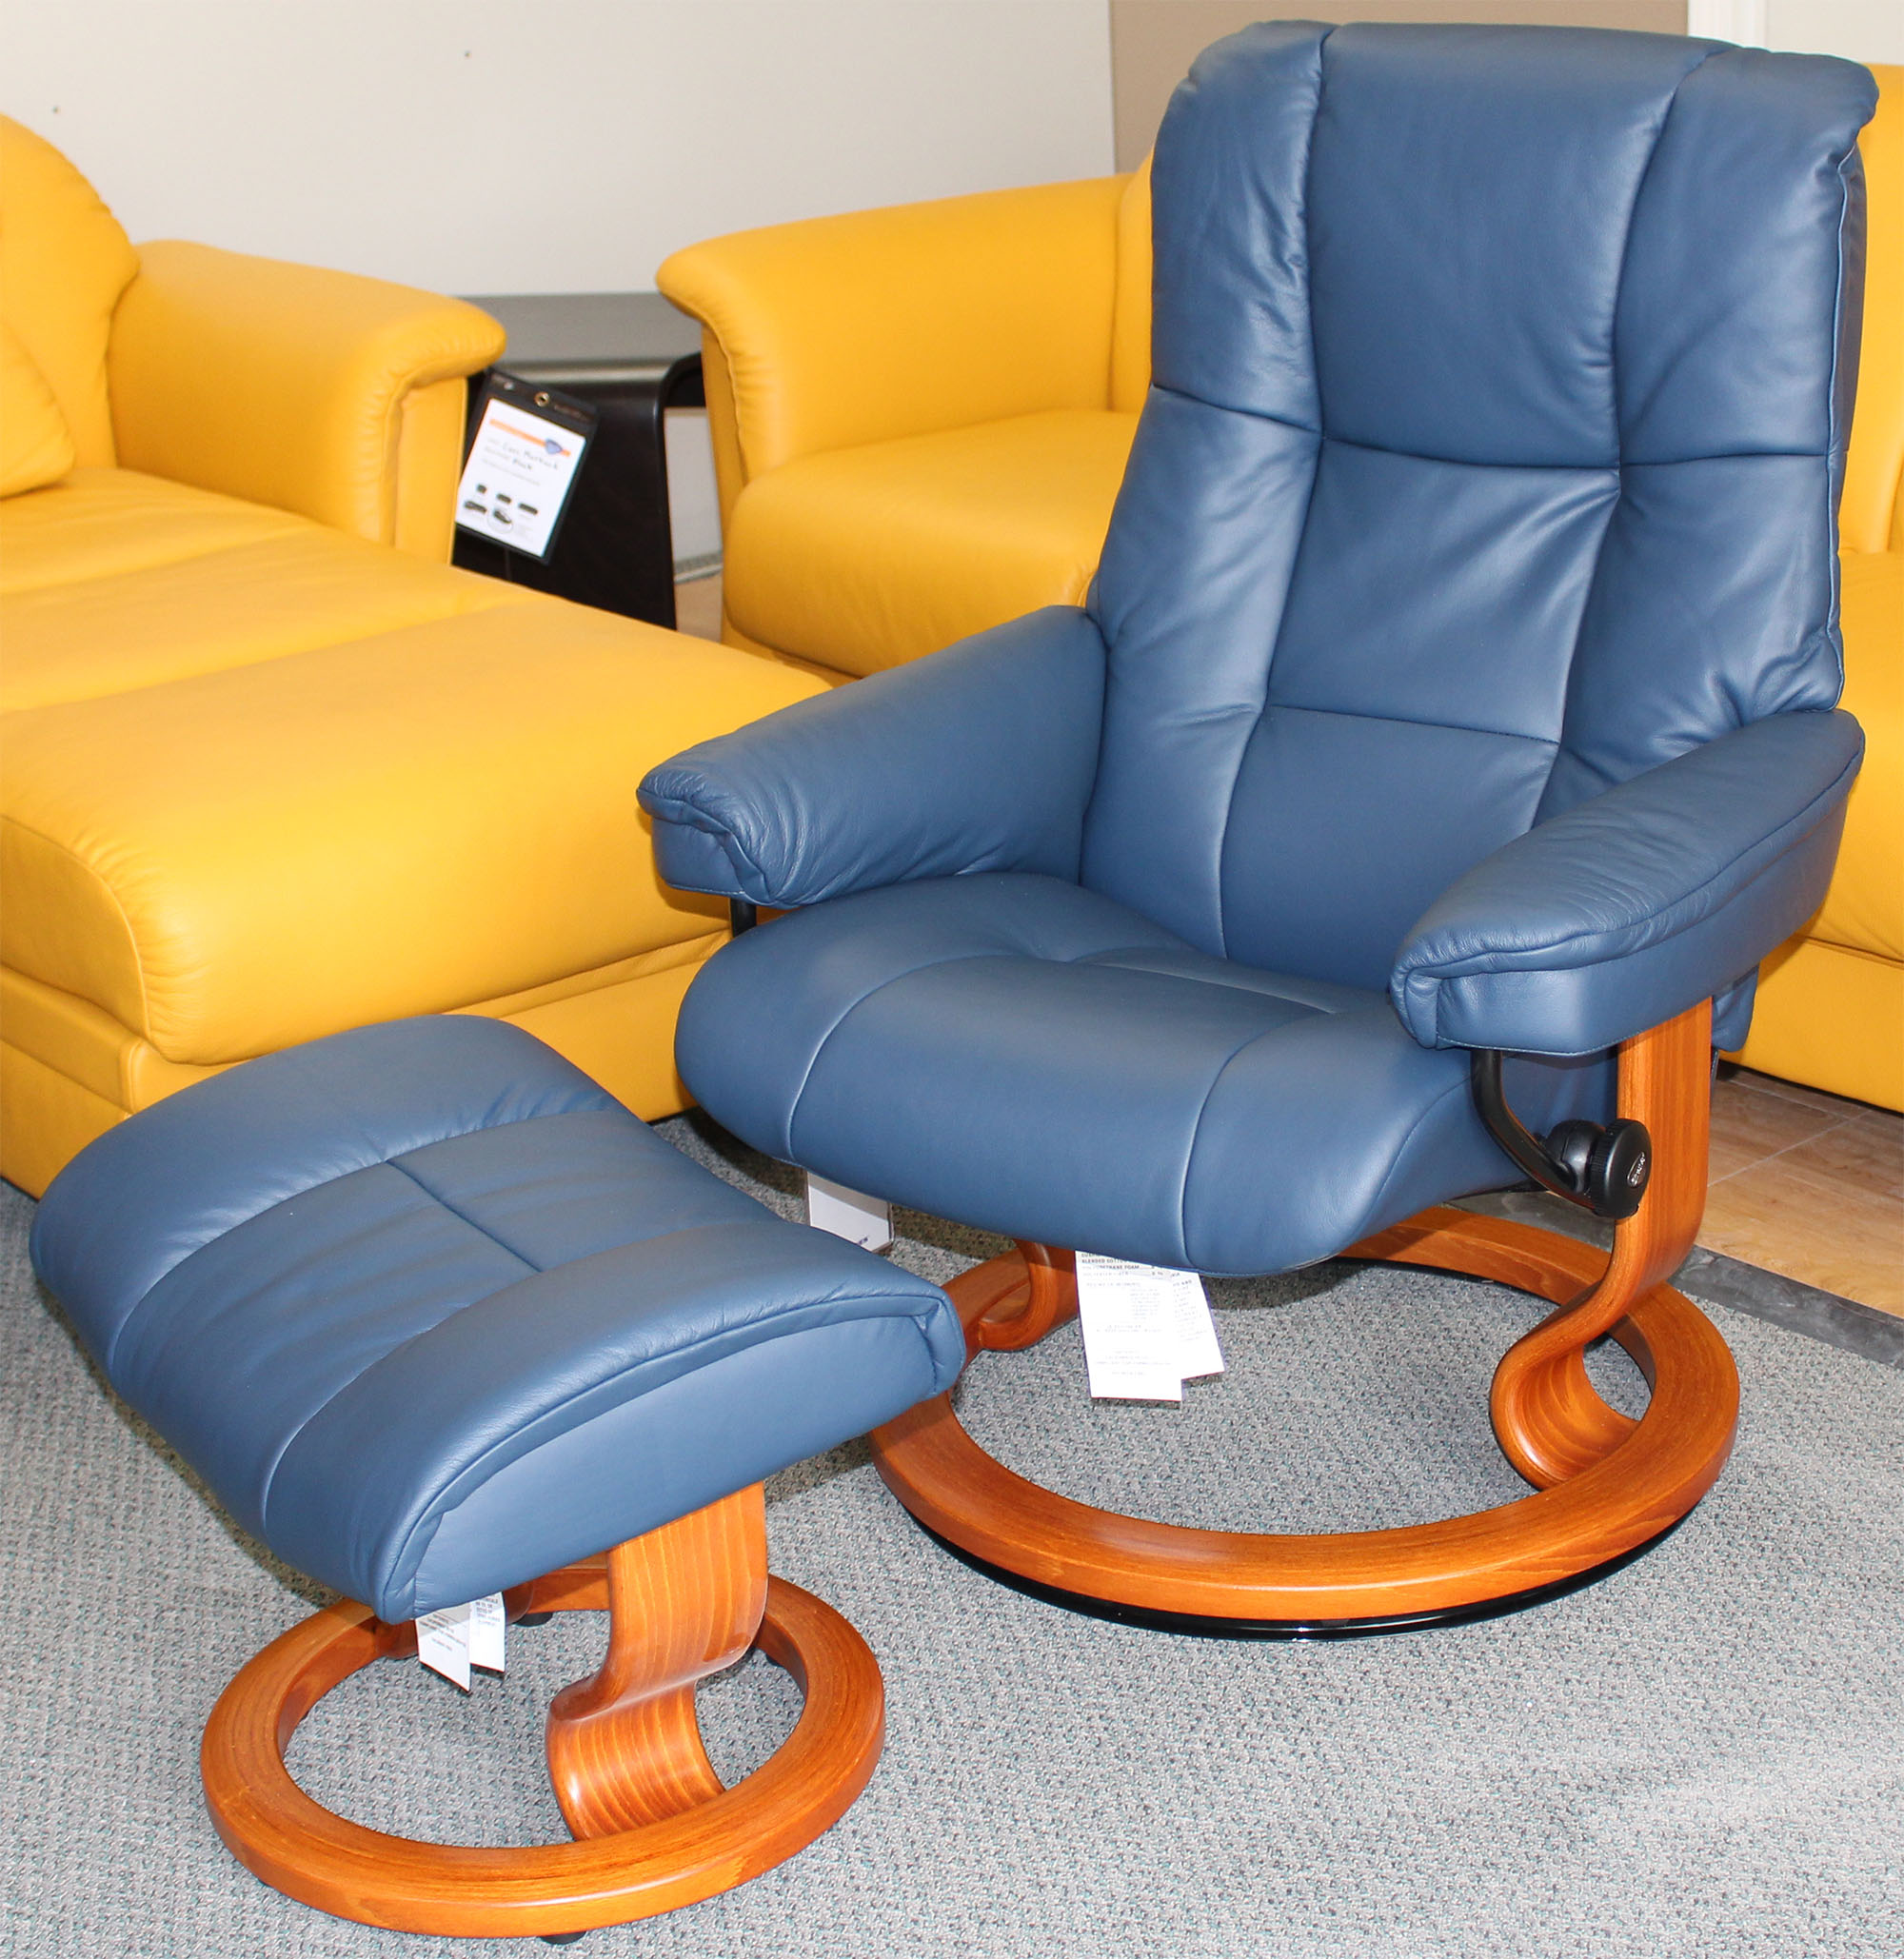 stressless mayfair paloma oxford blue leather recliner chair and